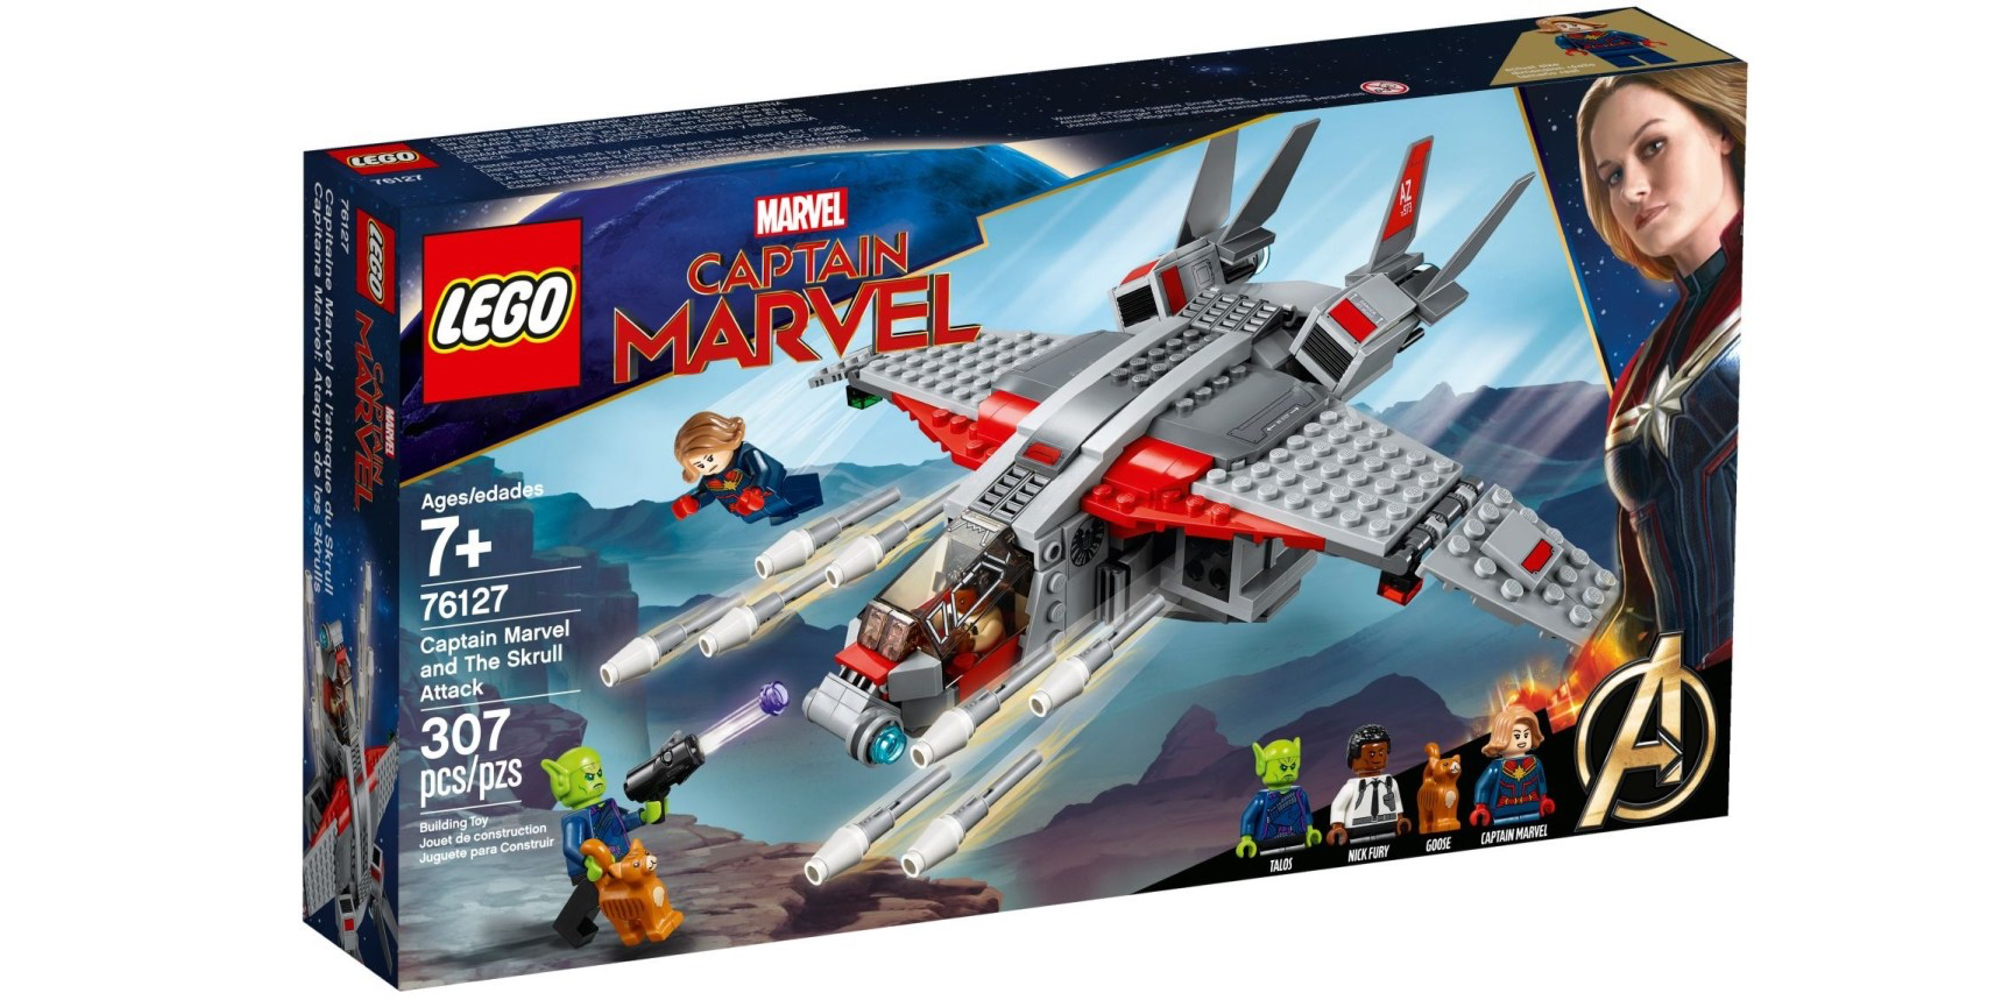 LEGO Captain Marvel Box Front